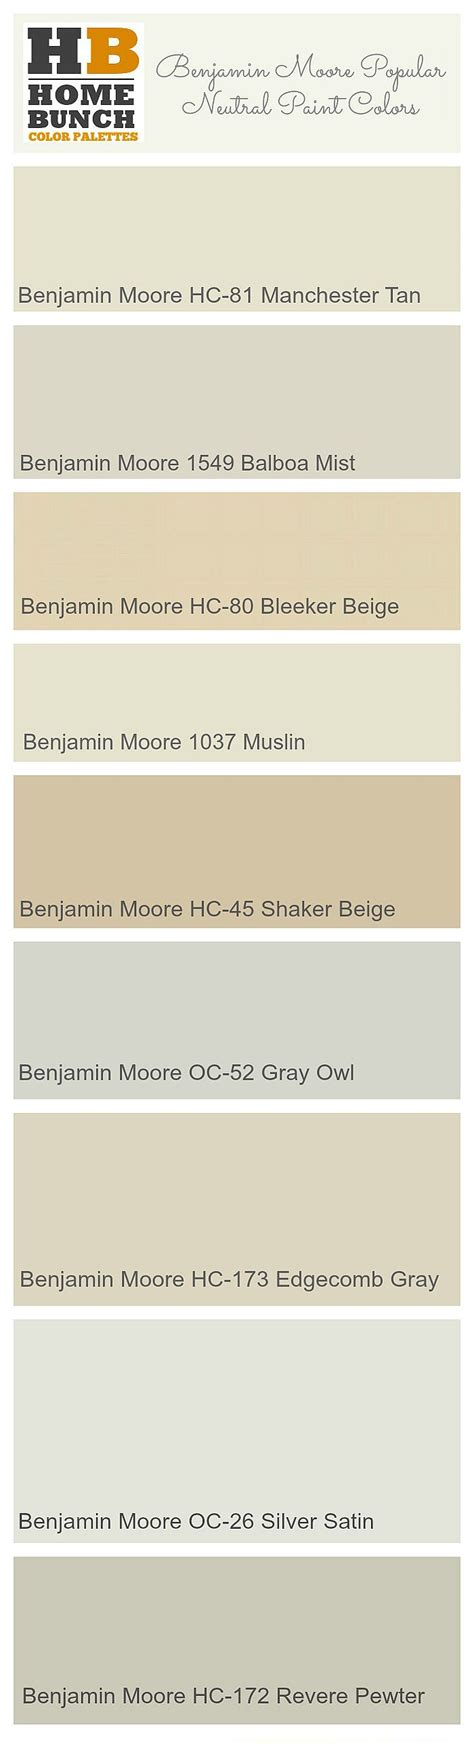 Benjamin Moore Popular Neutral Paint Colors Manchester. Dark Kitchen Designs. Home Design Kitchen Decor. Malaysian Kitchen Design. Design Your Kitchen Online. Kitchen Design And Decorating Ideas. Kitchen Design Forum. Dream Kitchen Design. Gourmet Kitchen Design